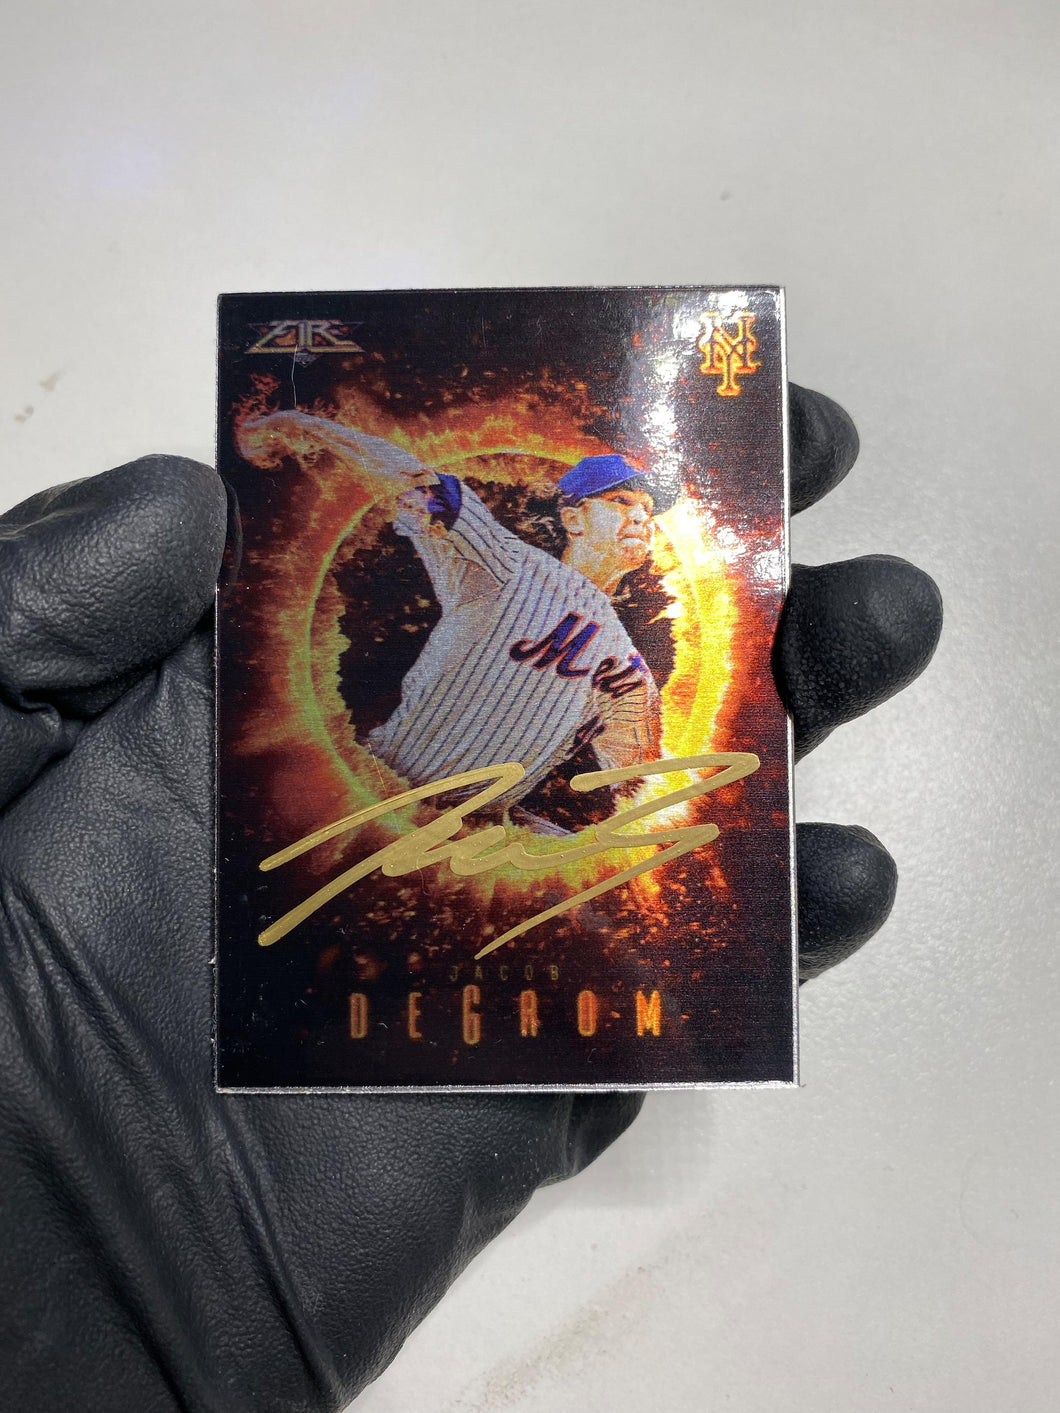 Jacob DeGrom - 1/1 TYSON BECK X TOPPS AUTOGRAPHED 2015 FIRE METAL CARD 🔥